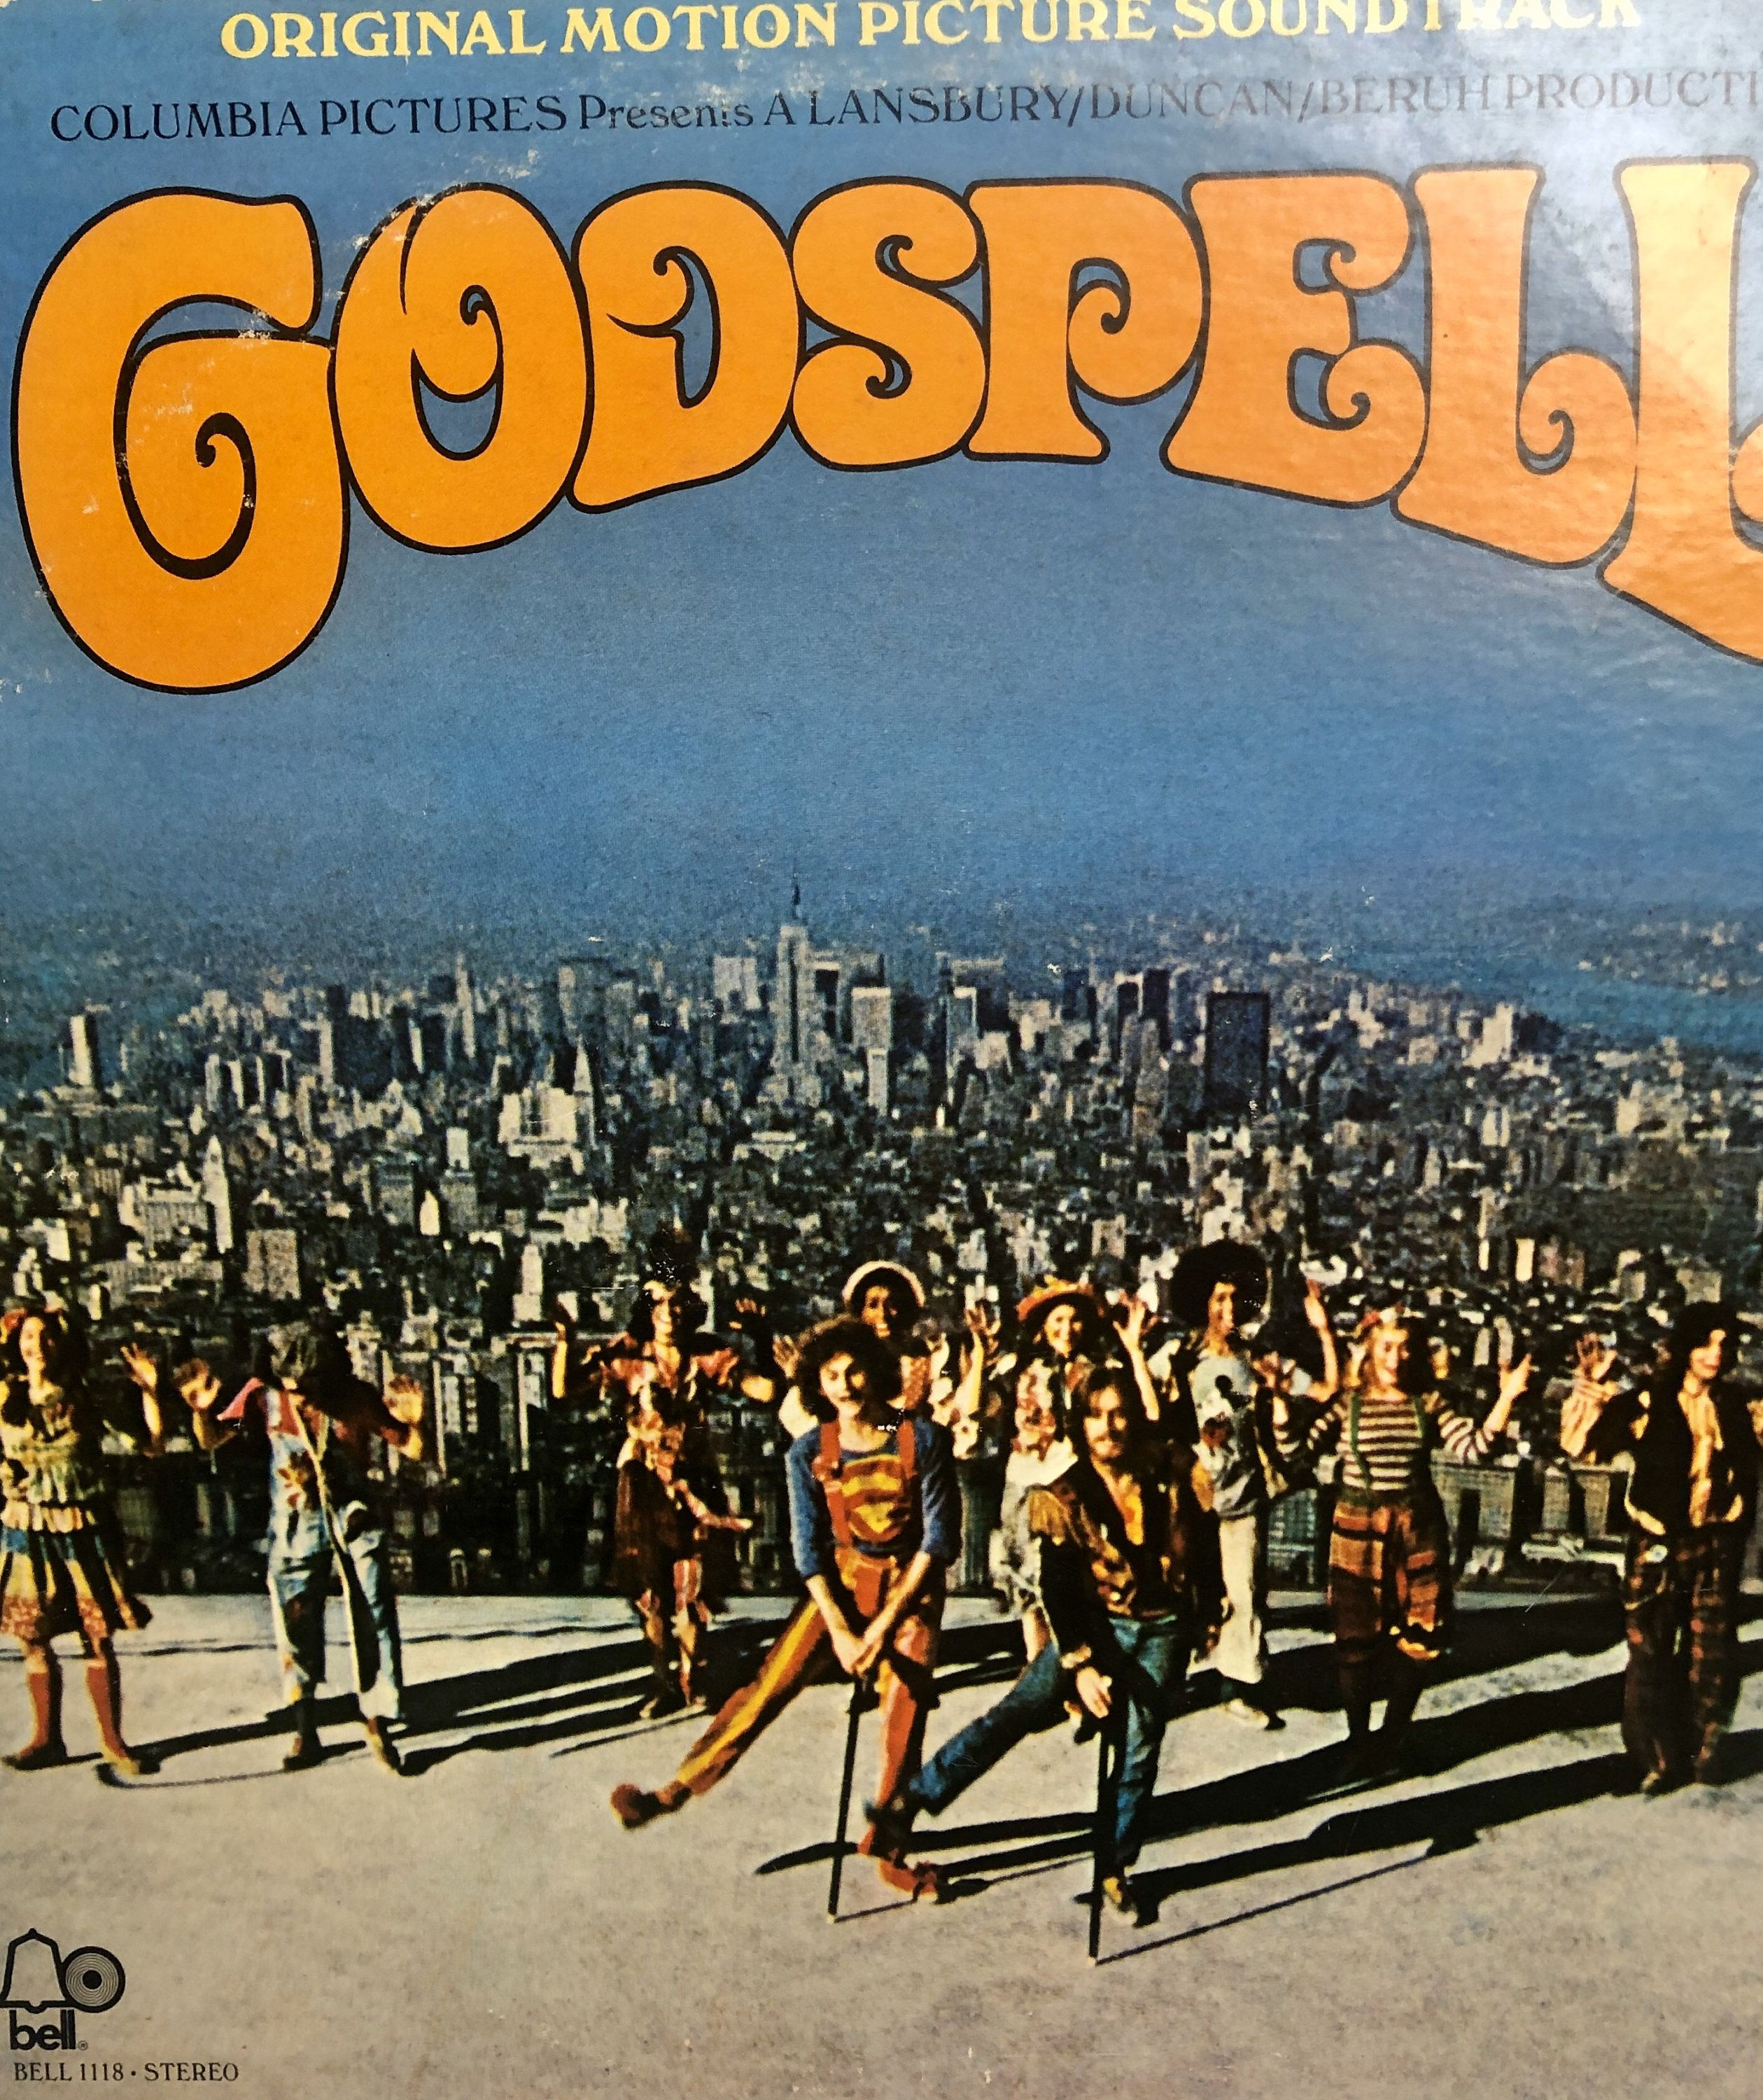 Godspell Vinyl Lp Moviesoundtrack 70 S Music Etsy Soundtrack Musical Movies Motion Picture